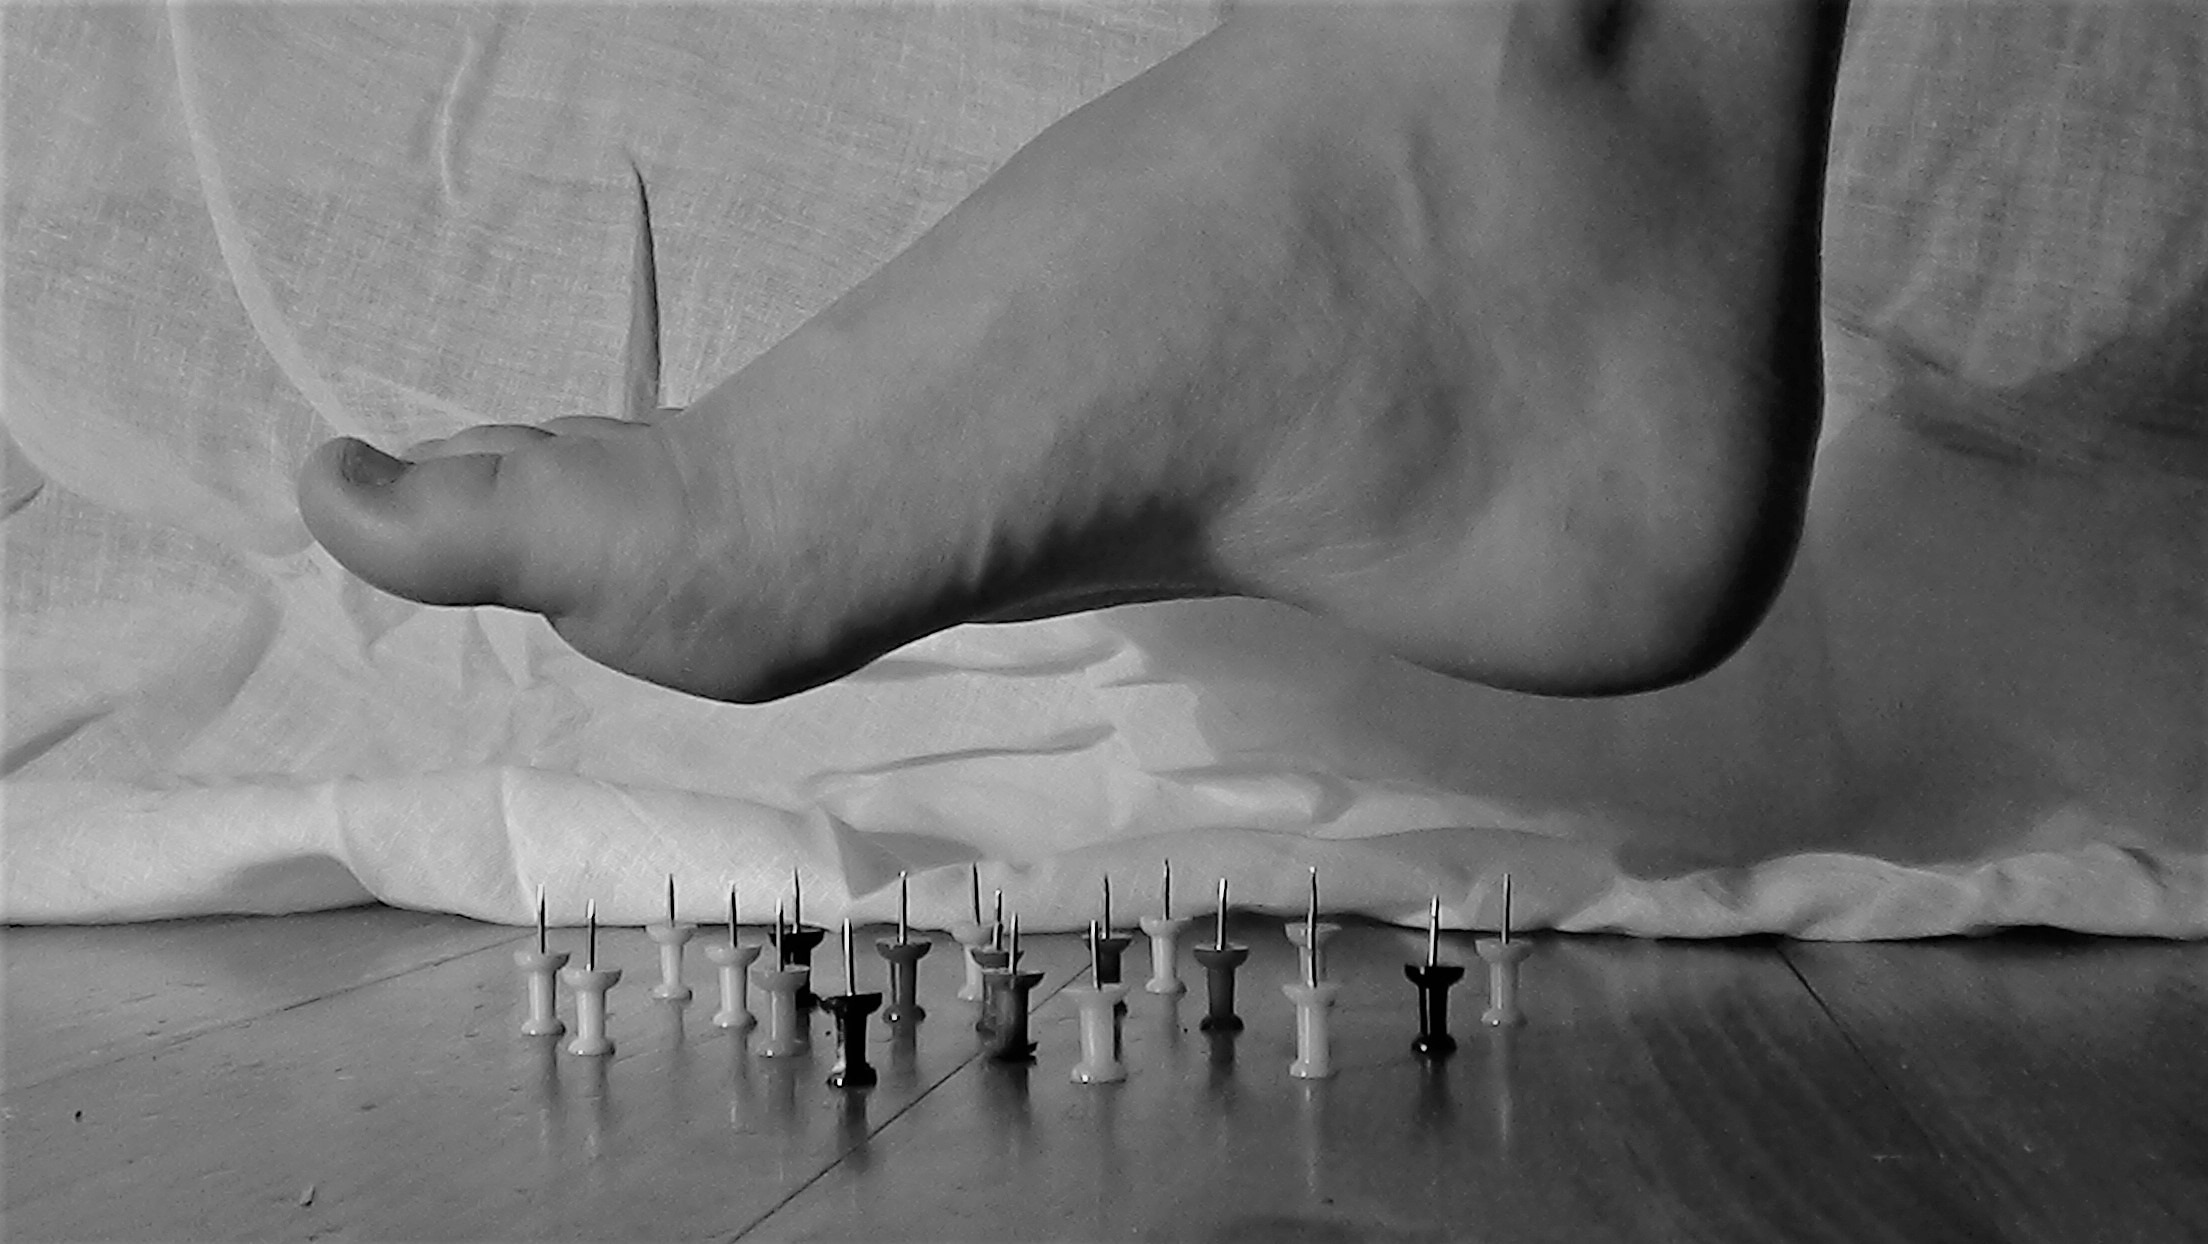 diabetic peripheral neuropathy feels like stepping on pins